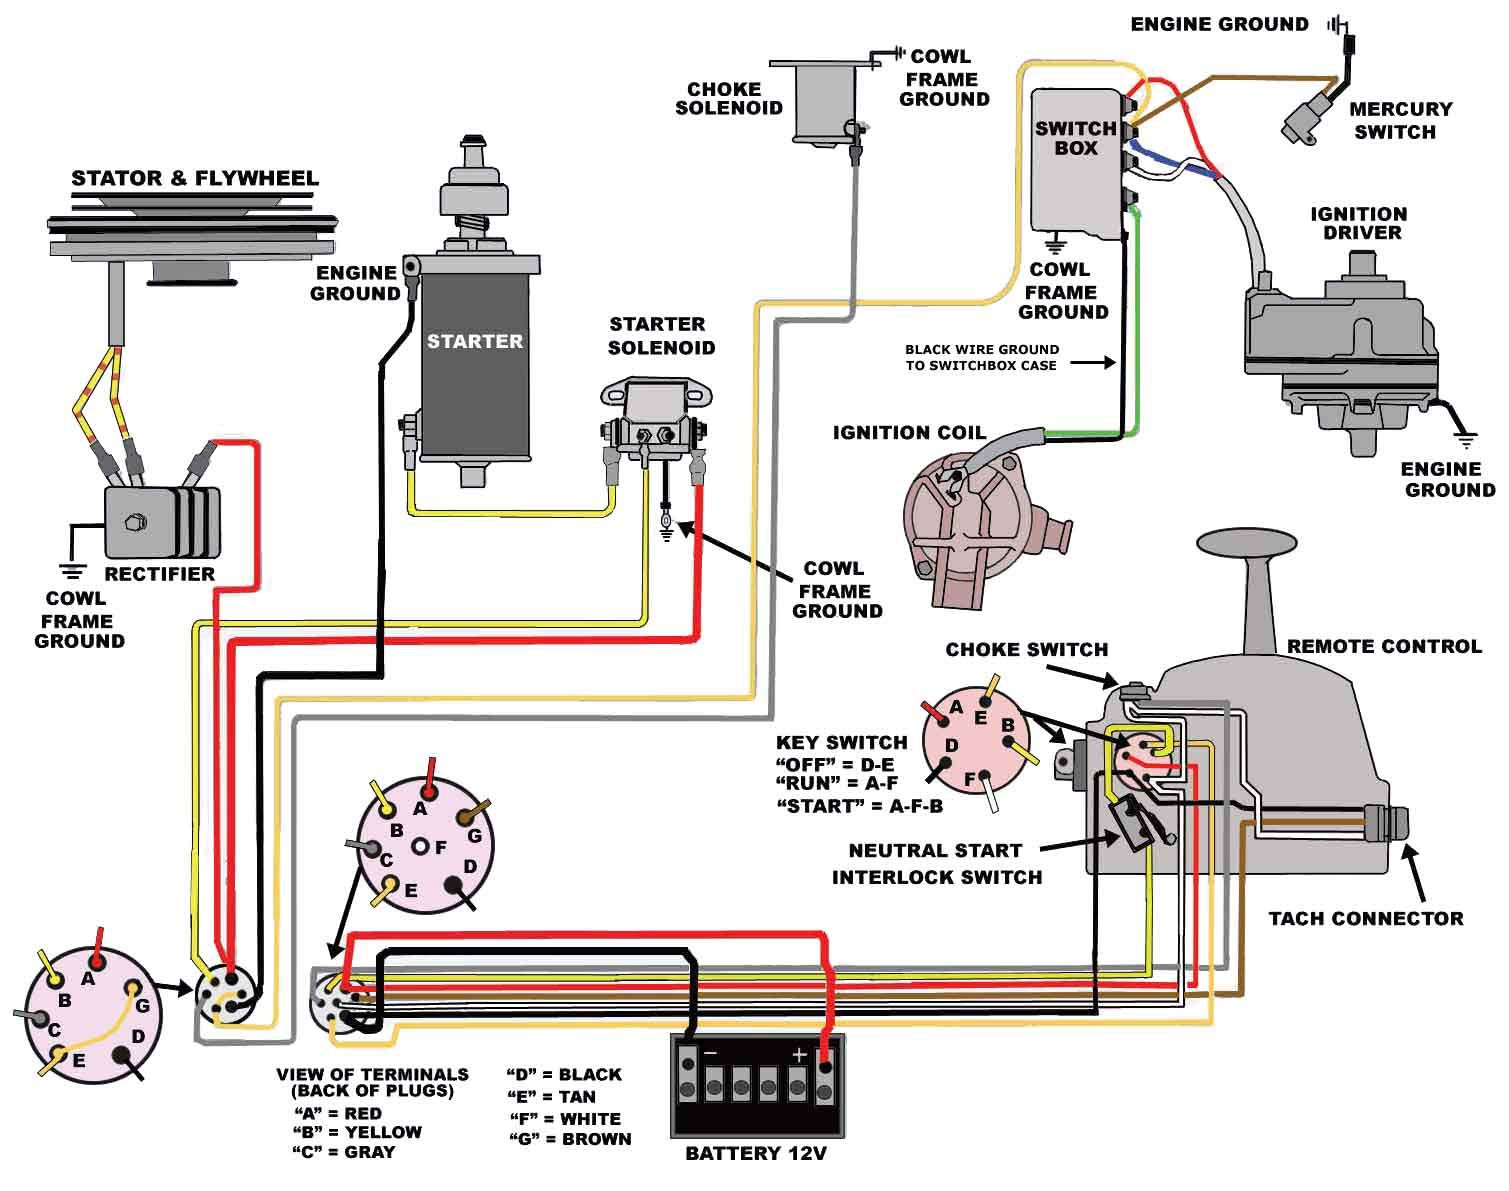 13cfb2d962bcd0c03103625817b7d51d mercury outboard wiring diagram diagram pinterest mercury  at cos-gaming.co